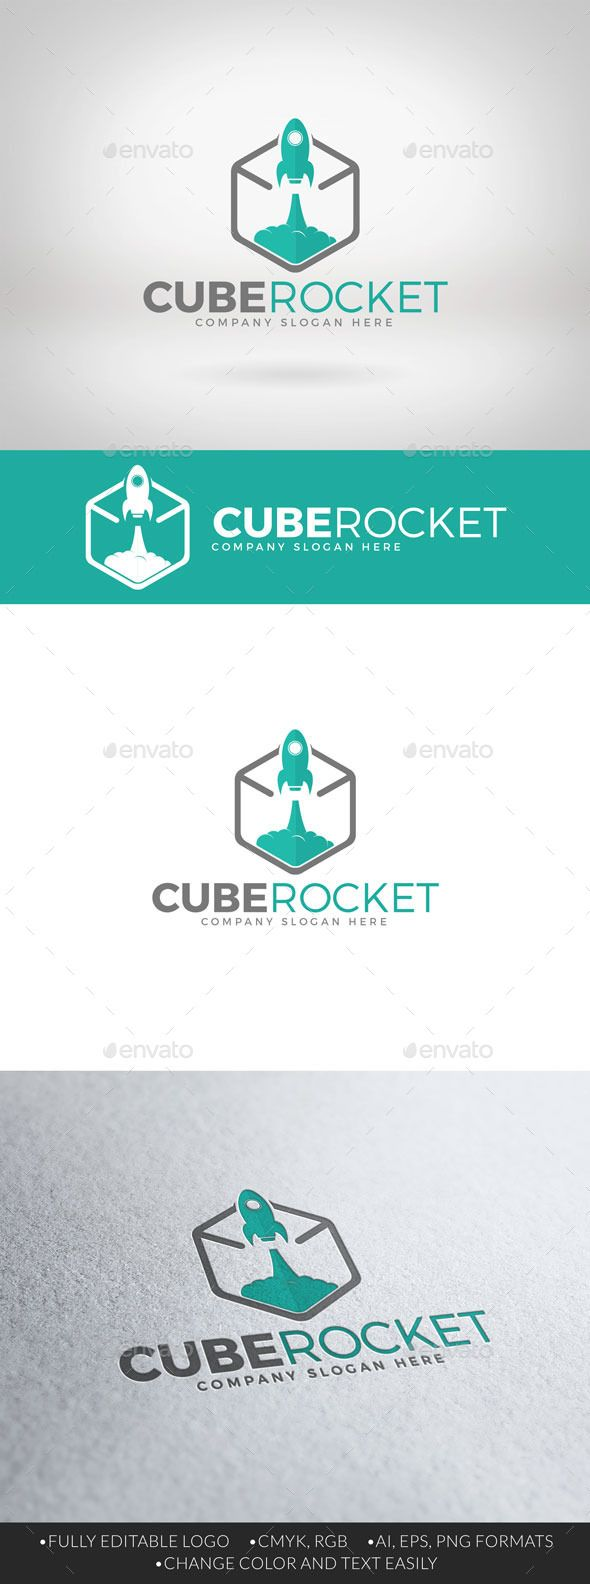 Cube Rocket Logo — Vector EPS #flat #hexa • Available here → https://graphicriver.net/item/cube-rocket-logo/12376023?ref=pxcr